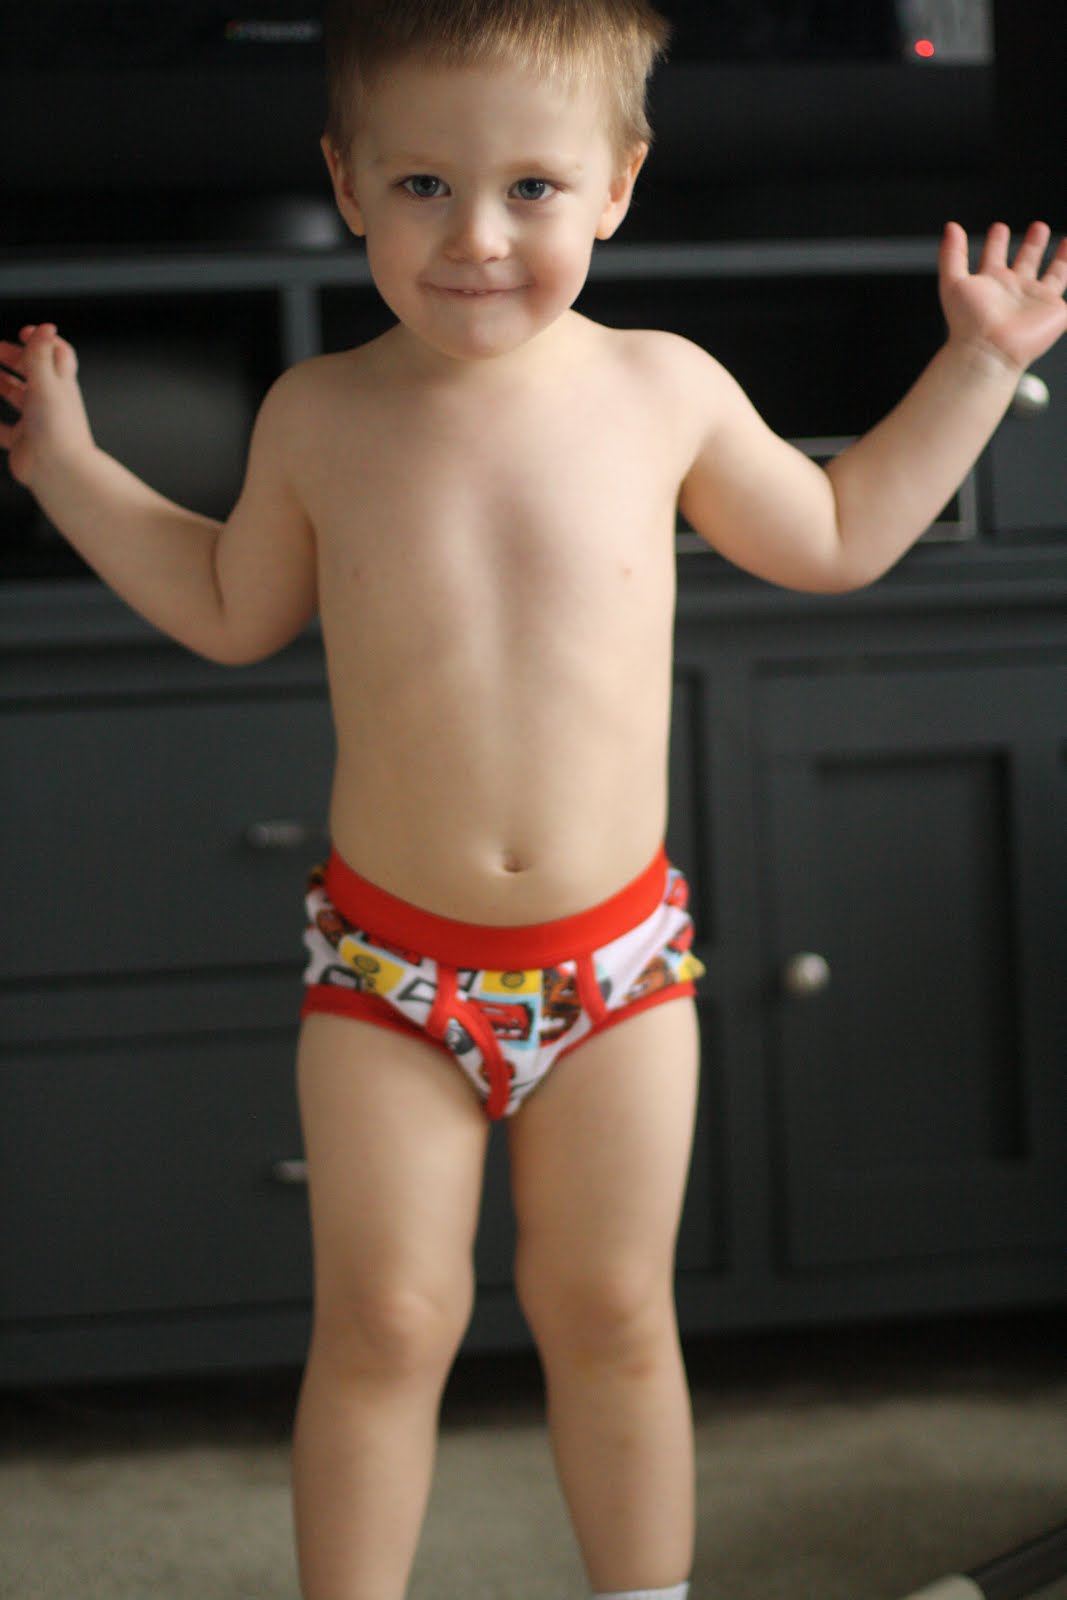 Boys Underwear. Kids' underwear should be a quick and easy purchase. We offer the essentials boys need in the styles he wants--from boxers to briefs and everything in between--in convenient multi-packs, so you can stock up on the basics with little effort.